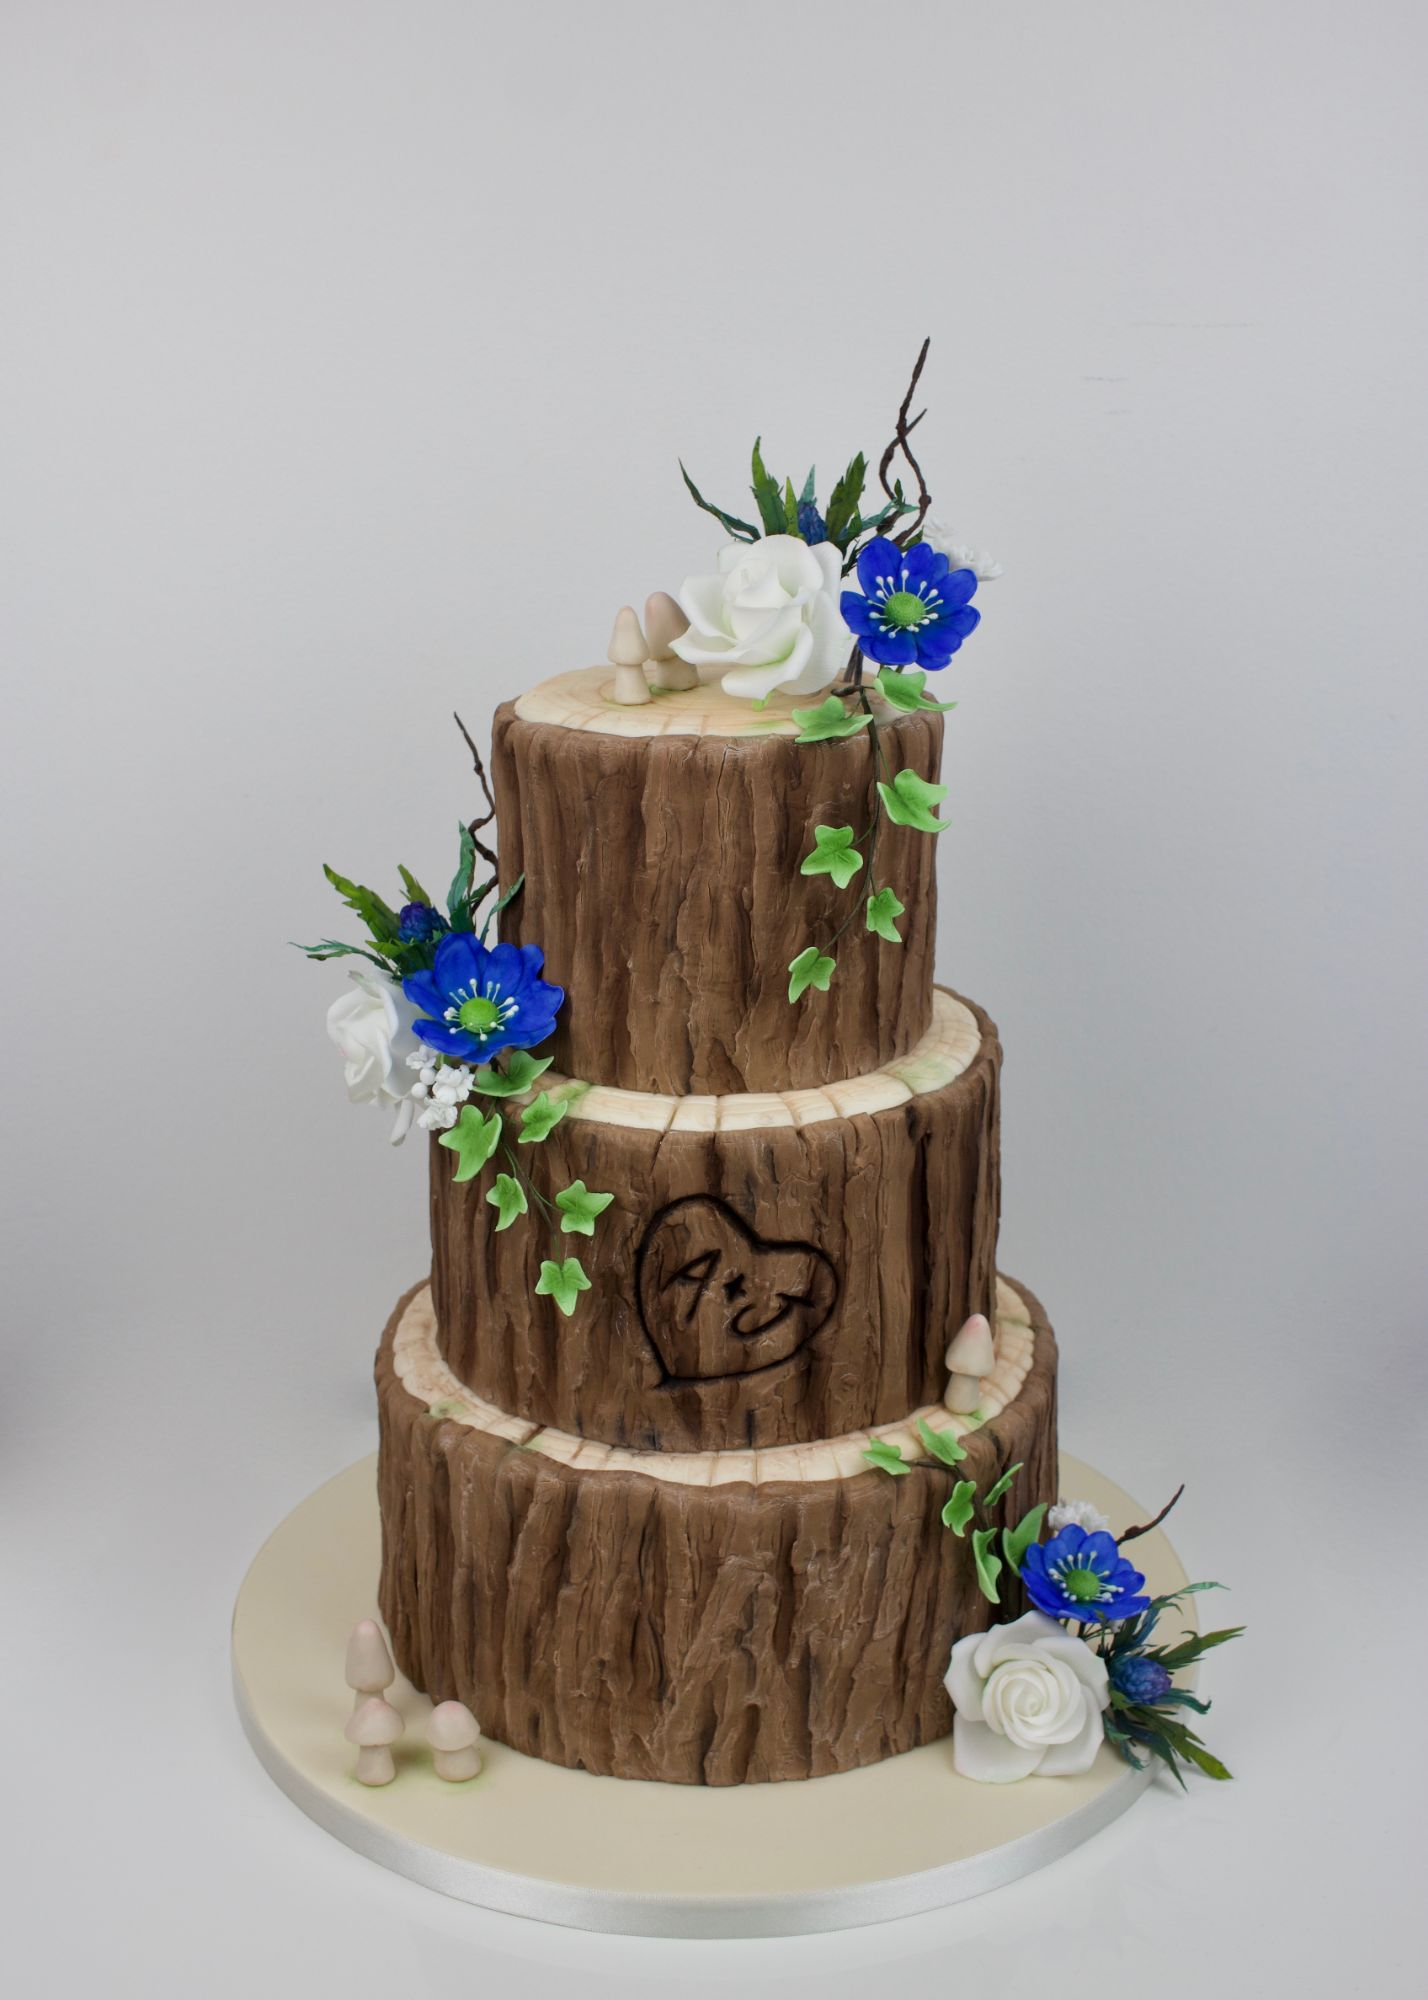 cake made to look like a tree trunk with scottish wild flowers, ivy and mushrooms